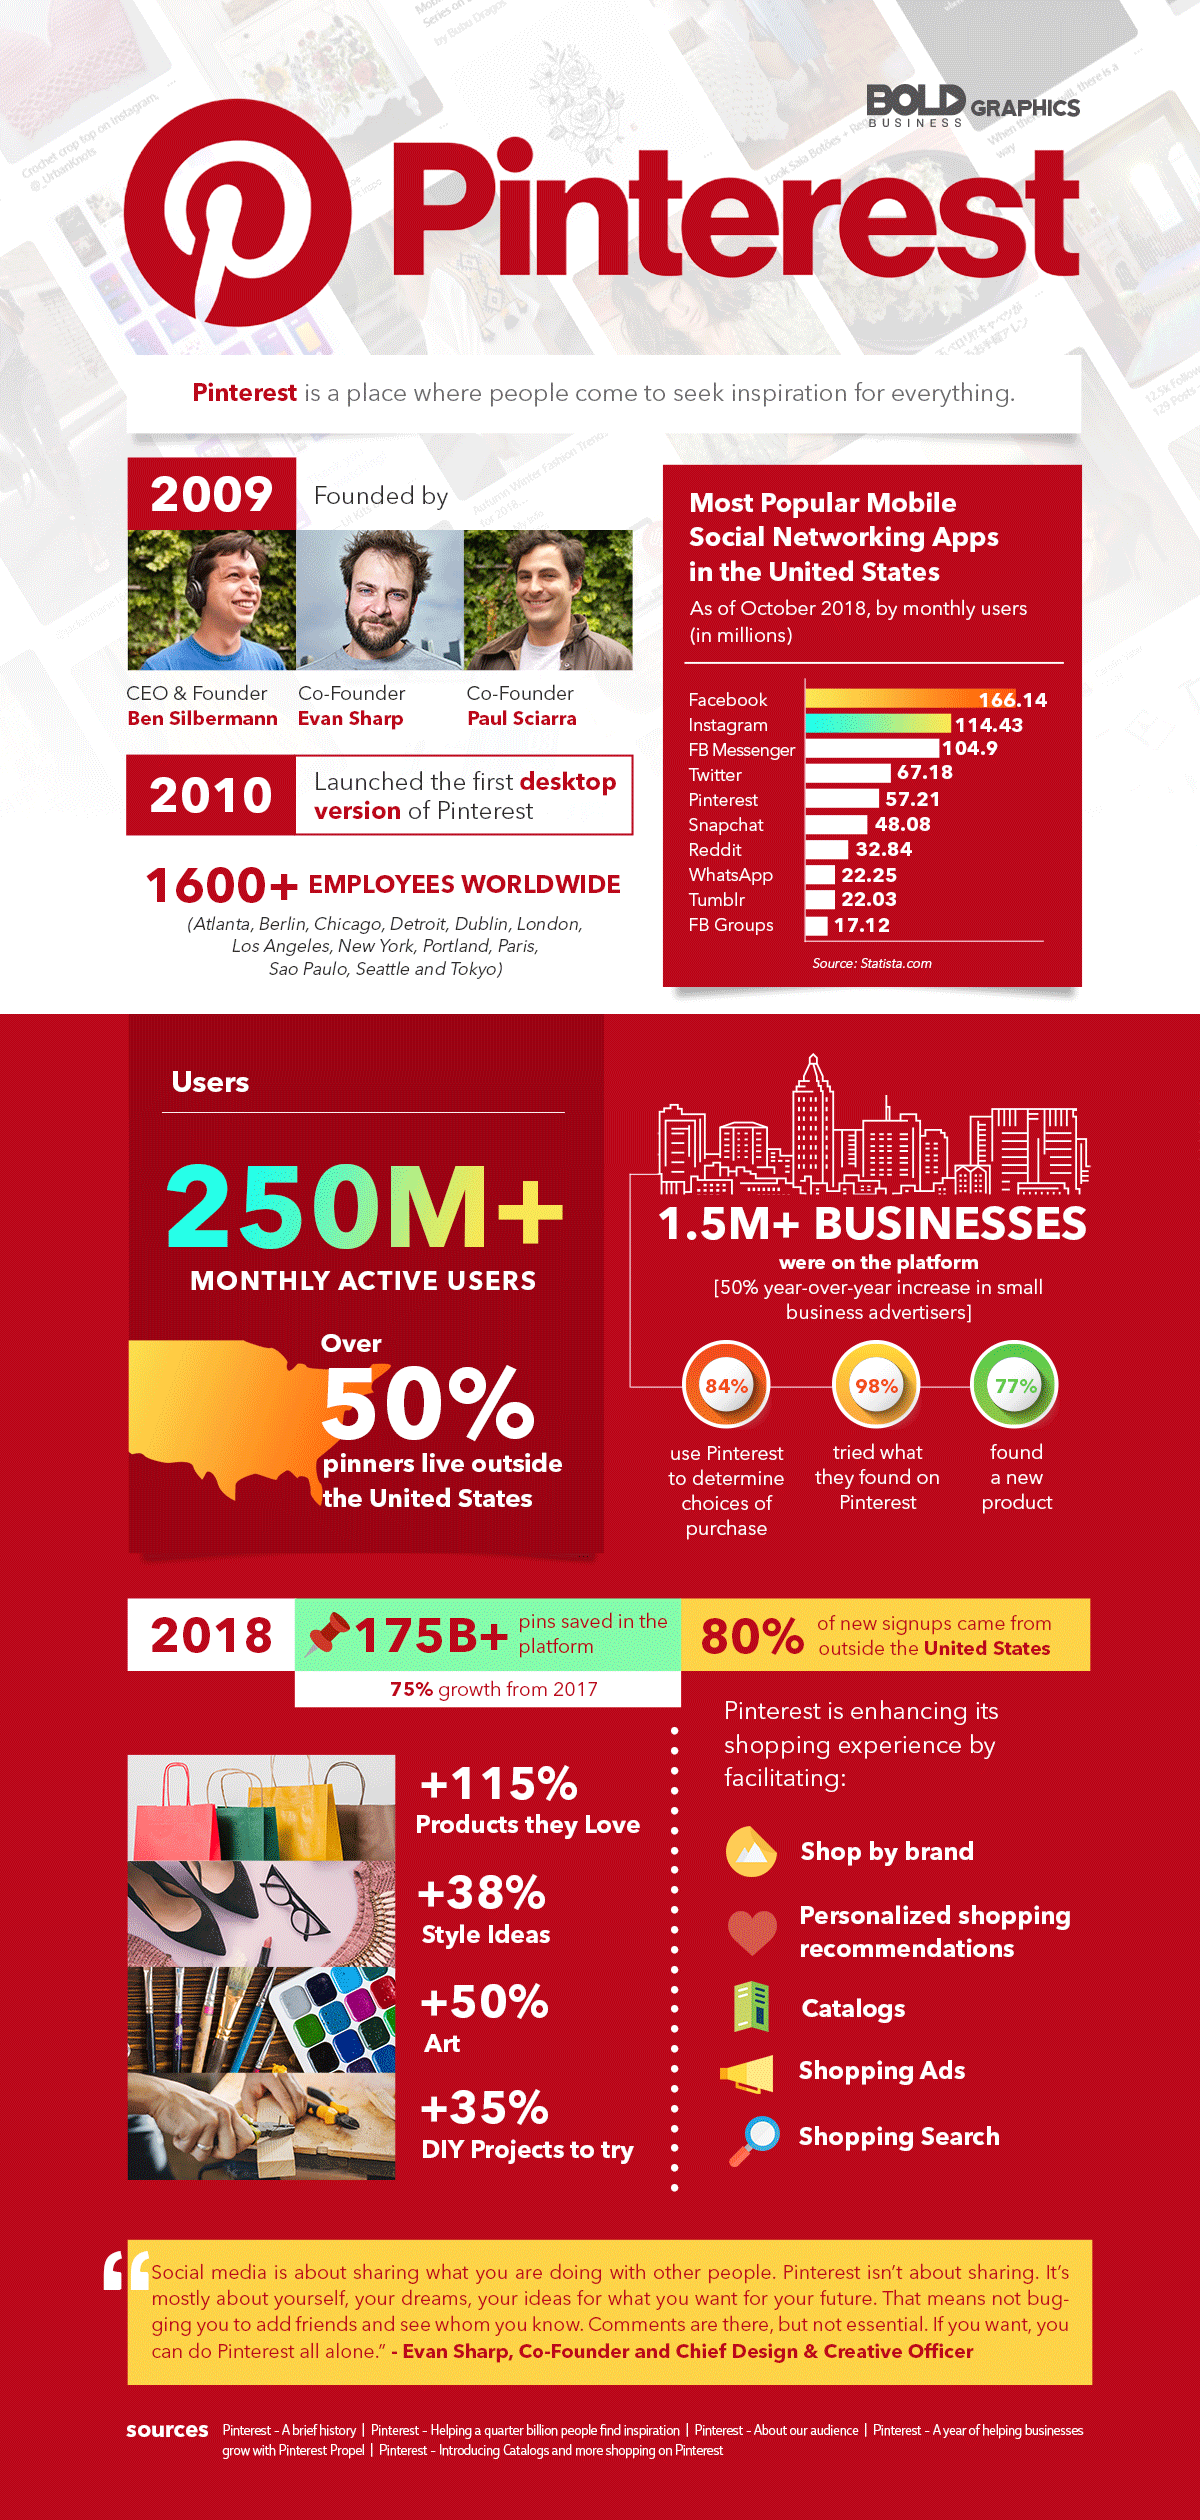 infographic about pinterest, a popular platform where people come to seek inspiration for everything.